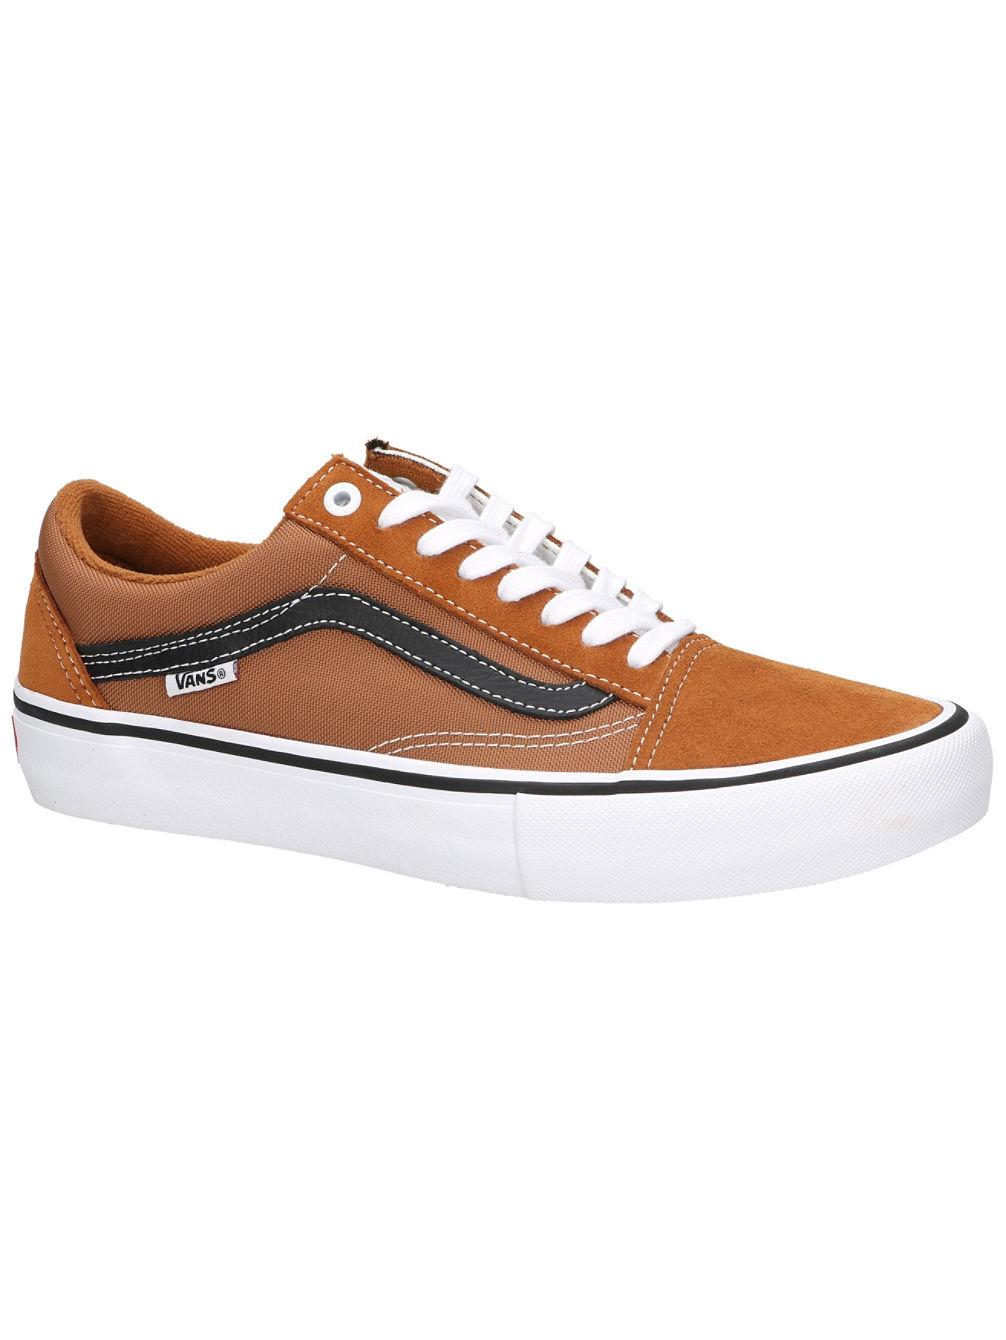 3ae00005719d Buy Vans Old Skool Pro Skate Shoes online at blue-tomato.com